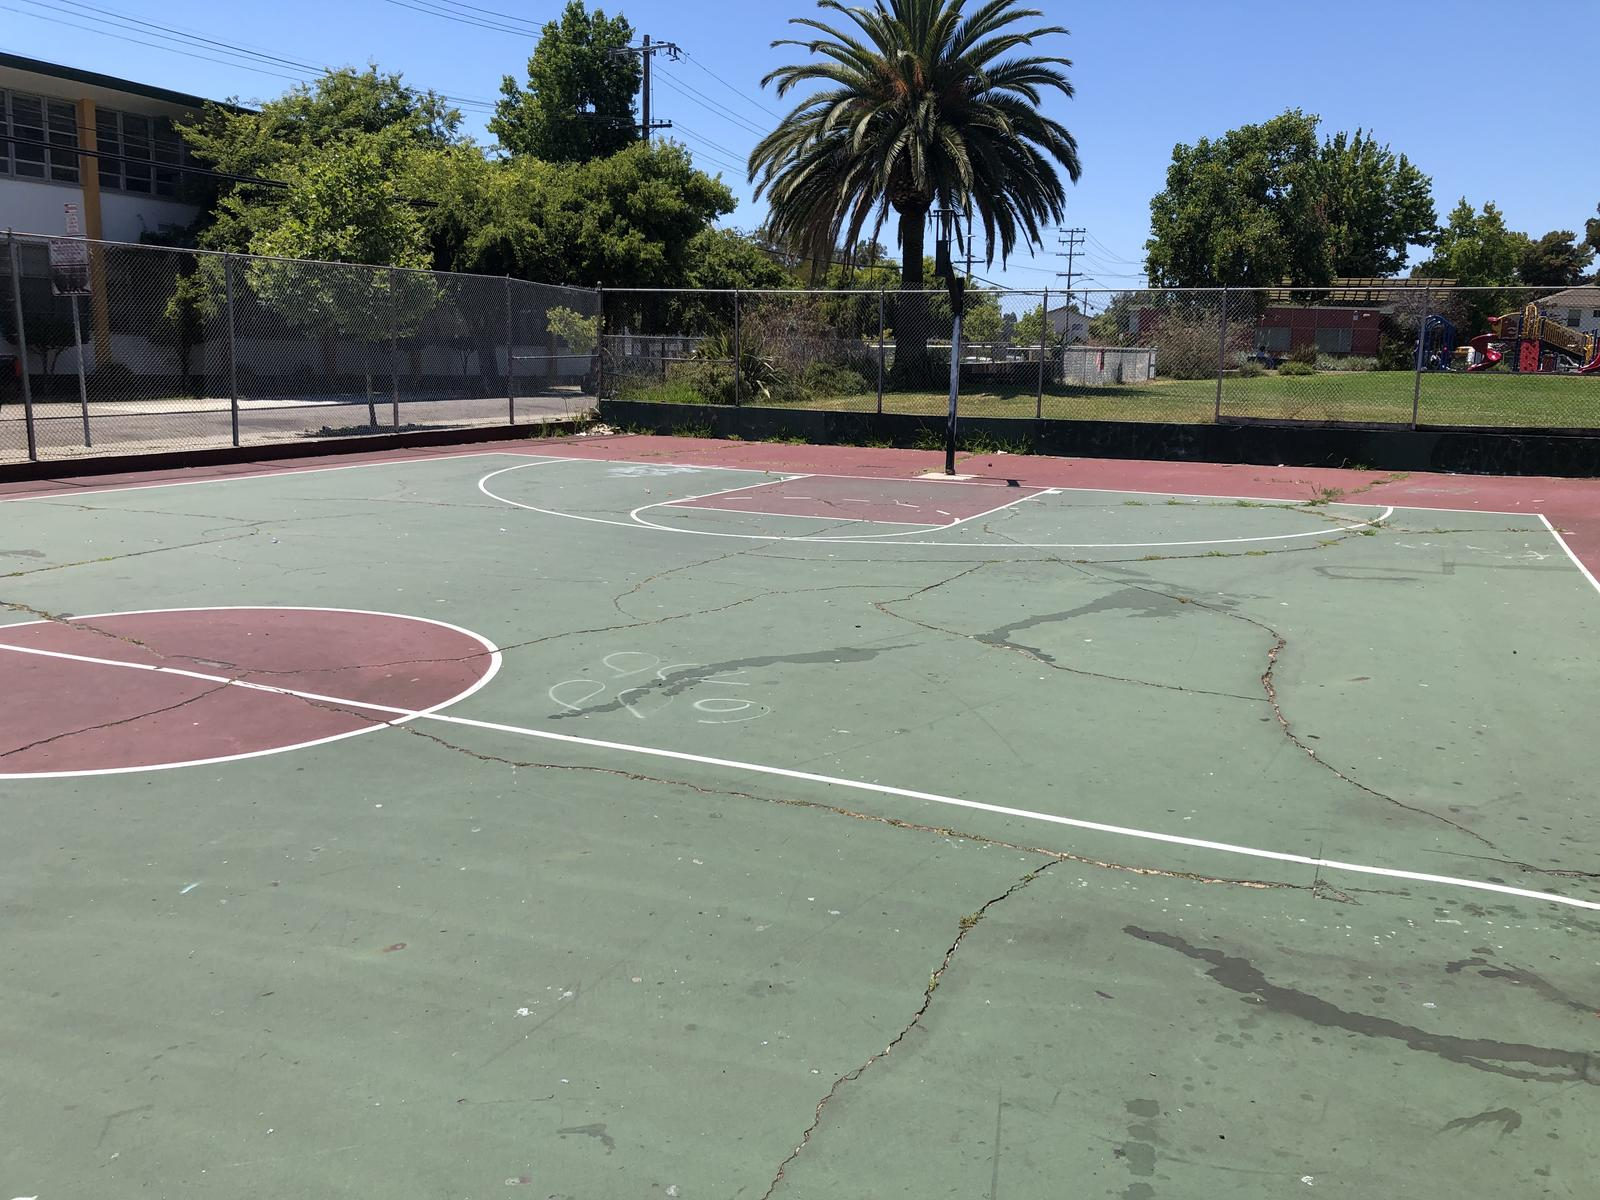 'Before' photo of the Concordia Park basketball court with missing hoop, uneven and cracked pavement.